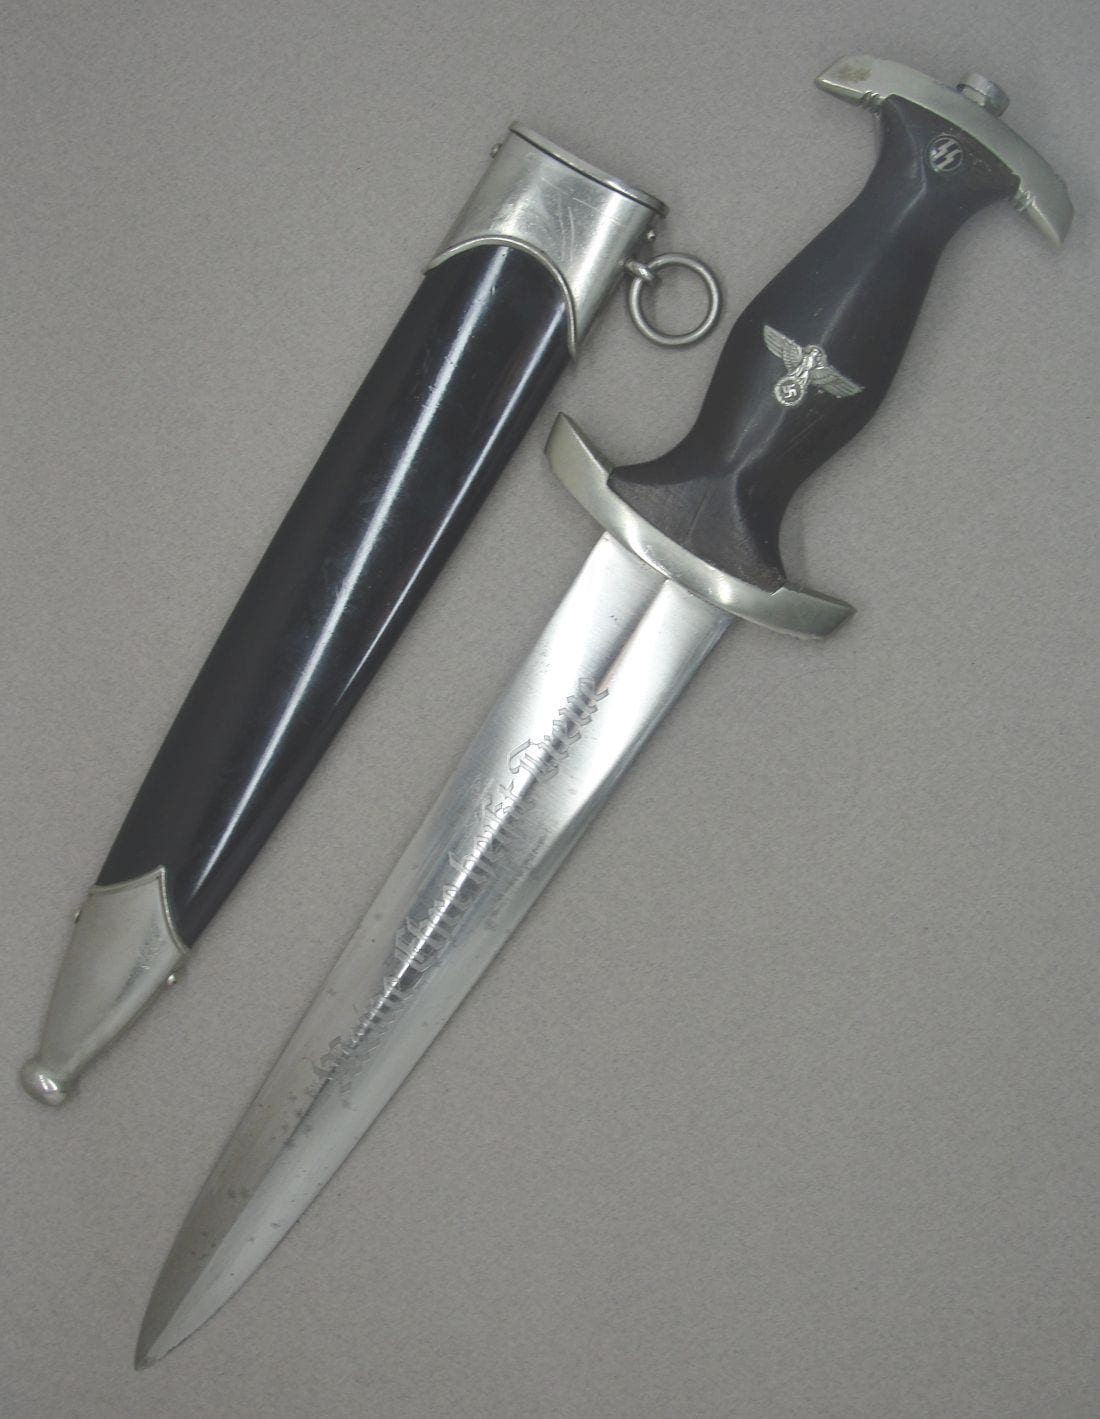 Early Model 1933 SS Dagger by SS 120/34 RZM